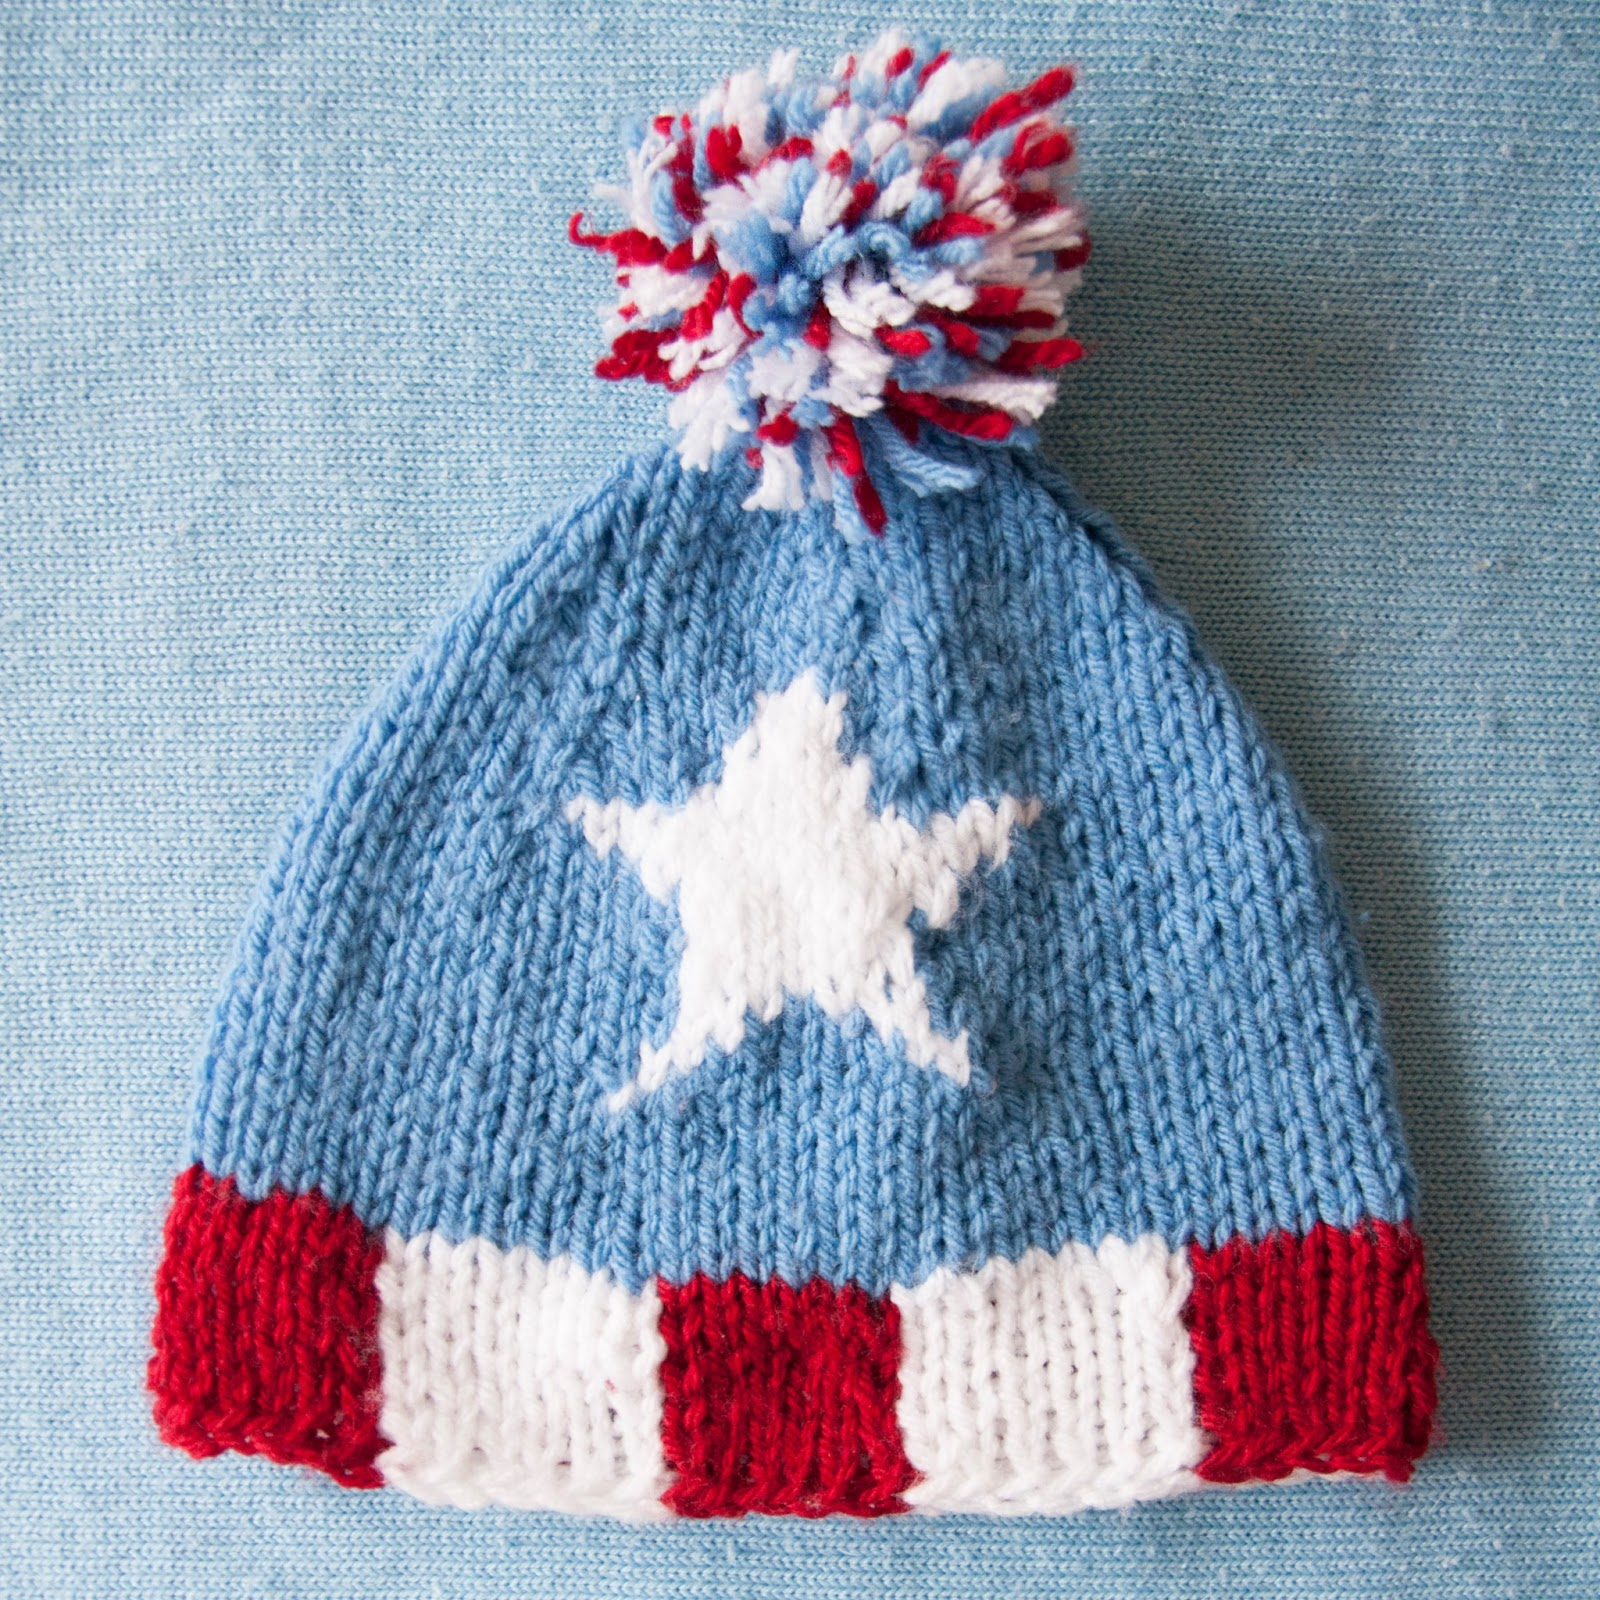 Captain America Knitting Pattern : WHAT IVE BEEN KNITTING: MOVIE KNITS SINCERELY LOUISE